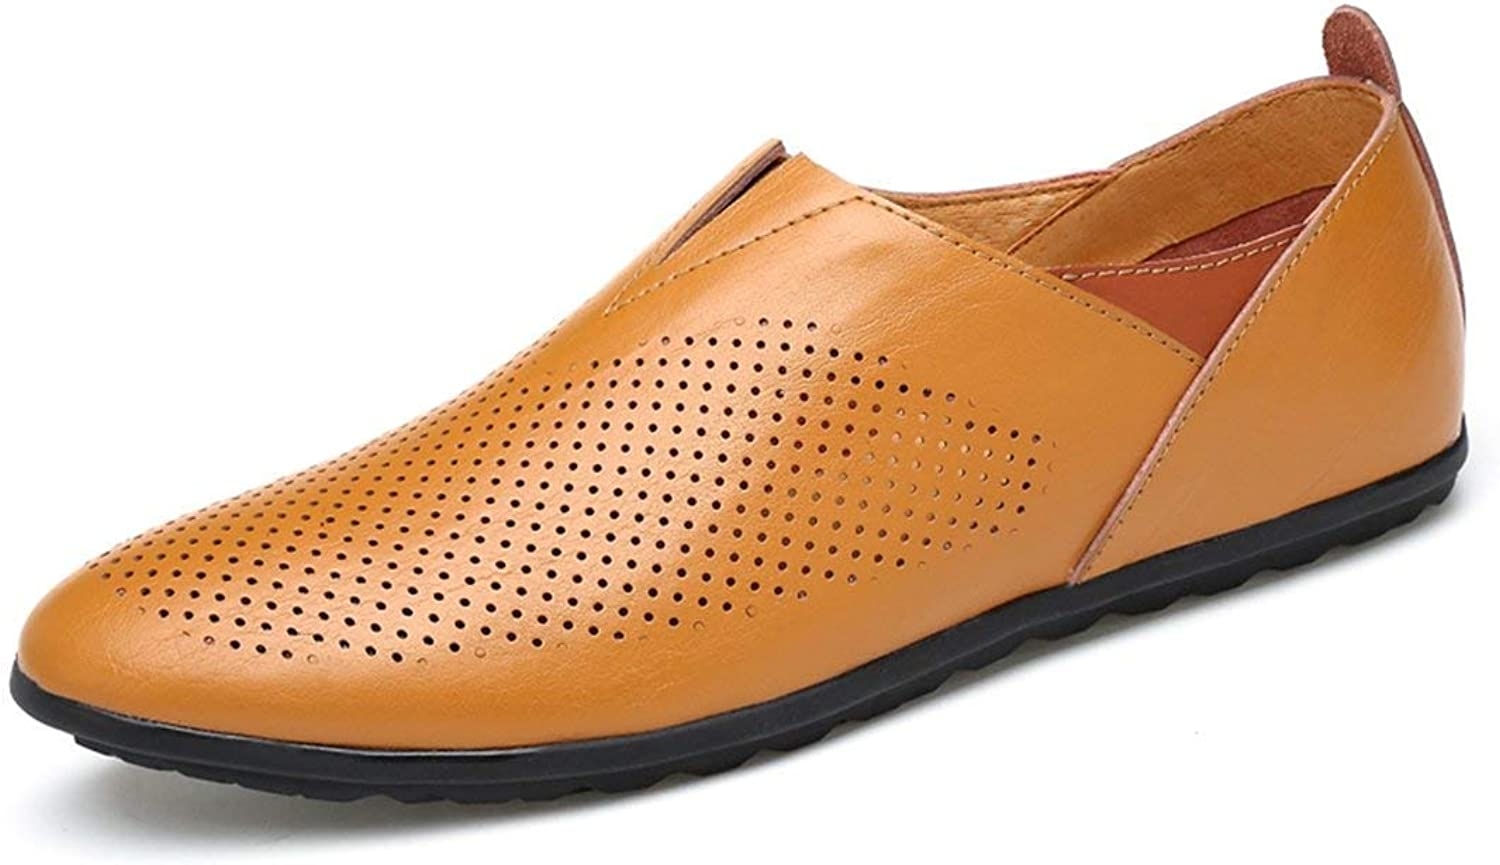 HhGold Männer Mesh Breathable Breathable Breathable Slip-on Braun Bequeme Loafers UK 5 (Farbe   -, Größe   -)  f33737